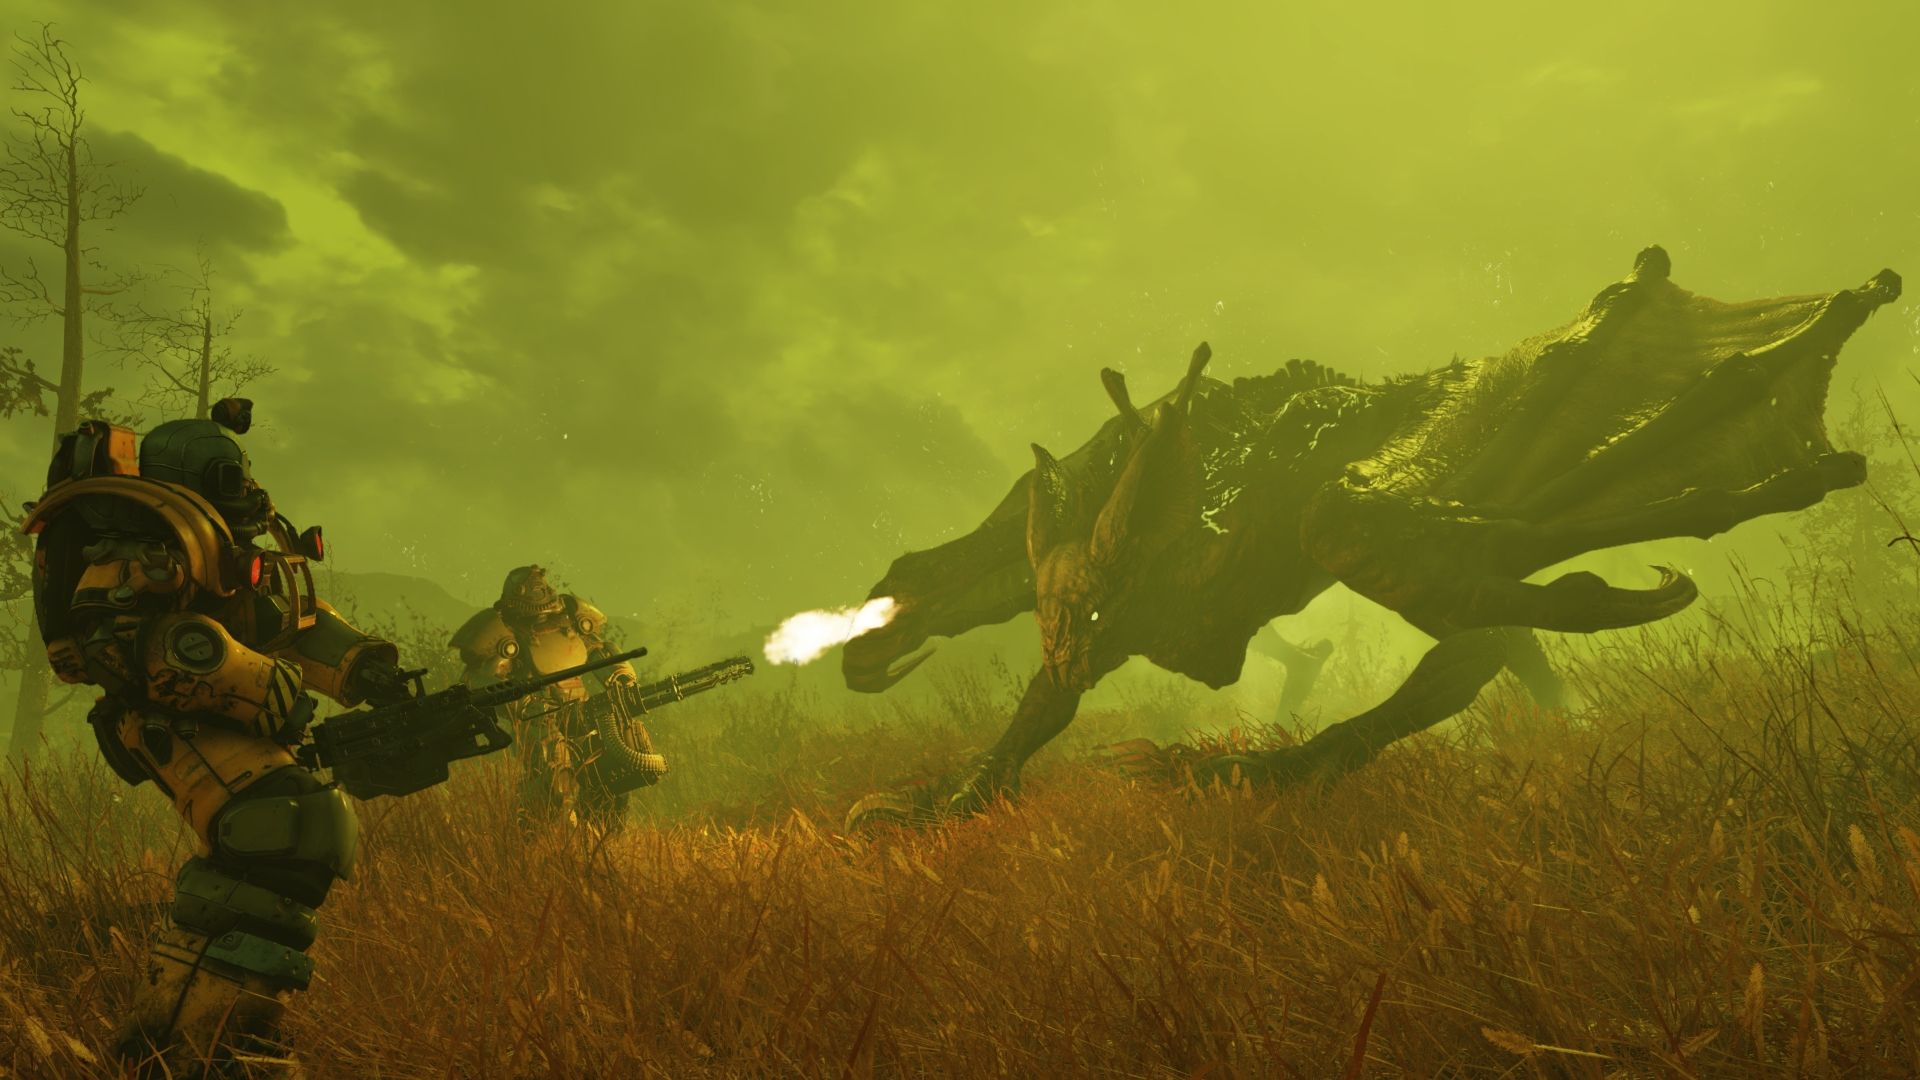 Two players in scrappy power armour face down what appears to be a massive radioactive dragon. The air is bright green and foggy